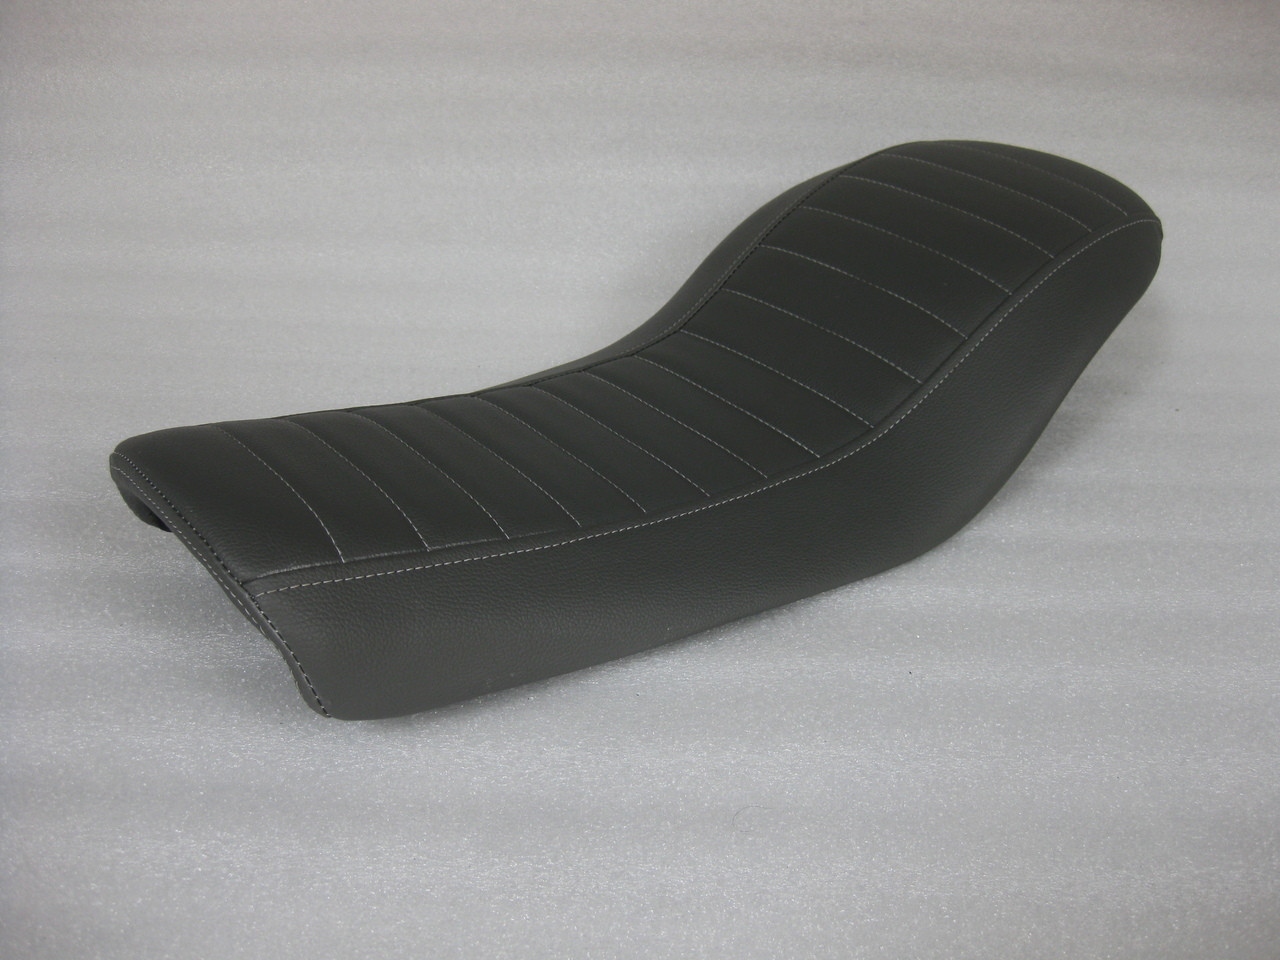 Honda CX500 Custom Cafe Racer Complete Motorcycle Seat with modified seat pan.  Super flat and shorter pan. #4274